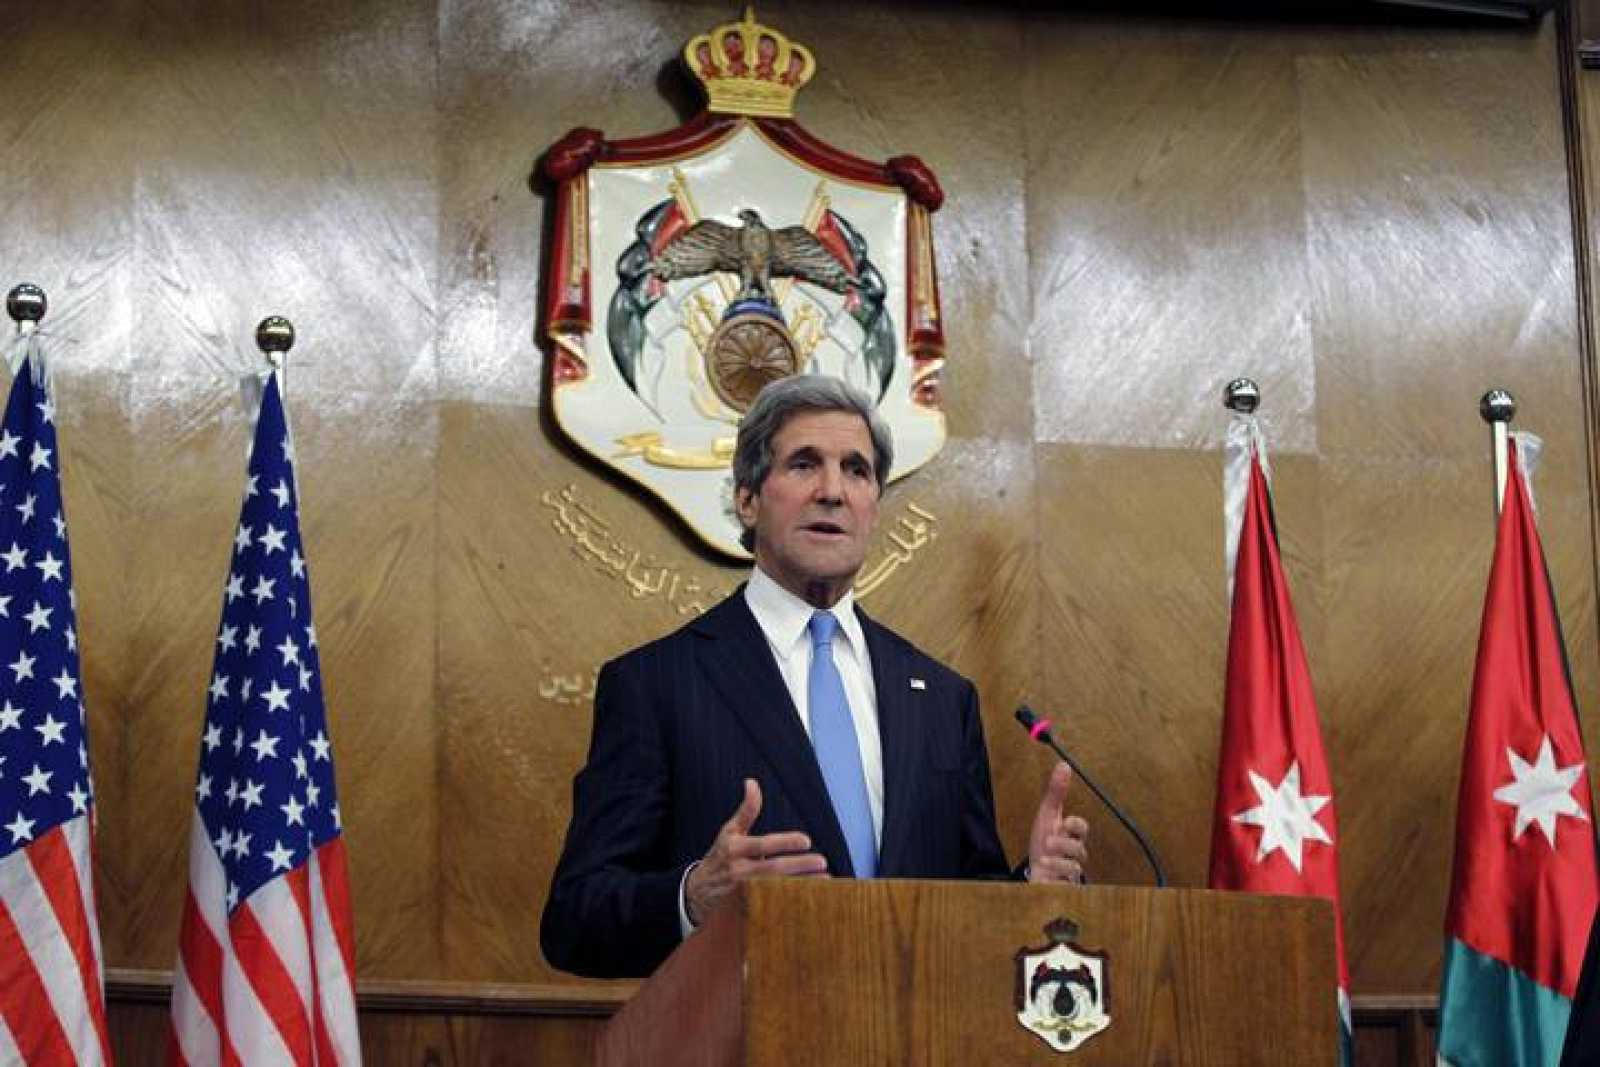 U.S. Secretary of State Kerry speaks during a joint news conference with Jordanian Foreign Minister Judeh in Amman